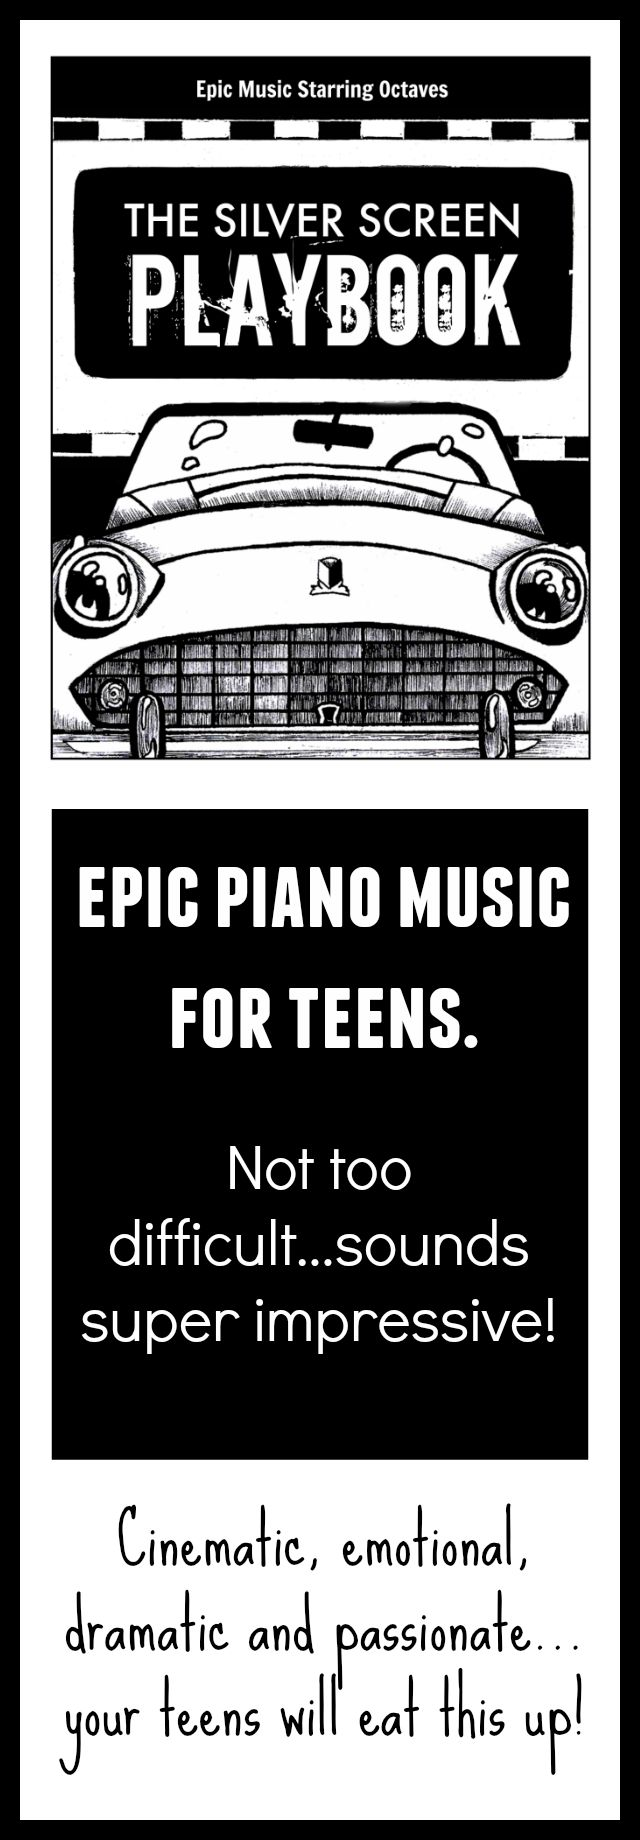 If you're looking for THE repertoire that will motivate your teens, this book is it! Getting rave reviews from teens and teachers alike, this reproducible book is packed with dramatic, powerful pieces that are not too complicated for intermediate players. Grab it for $8 if you become a www.pianobookclub.com member before June 26th see a video trailer at this link #CertifiedCool #PianoSheetMusic #YoullBeAHero